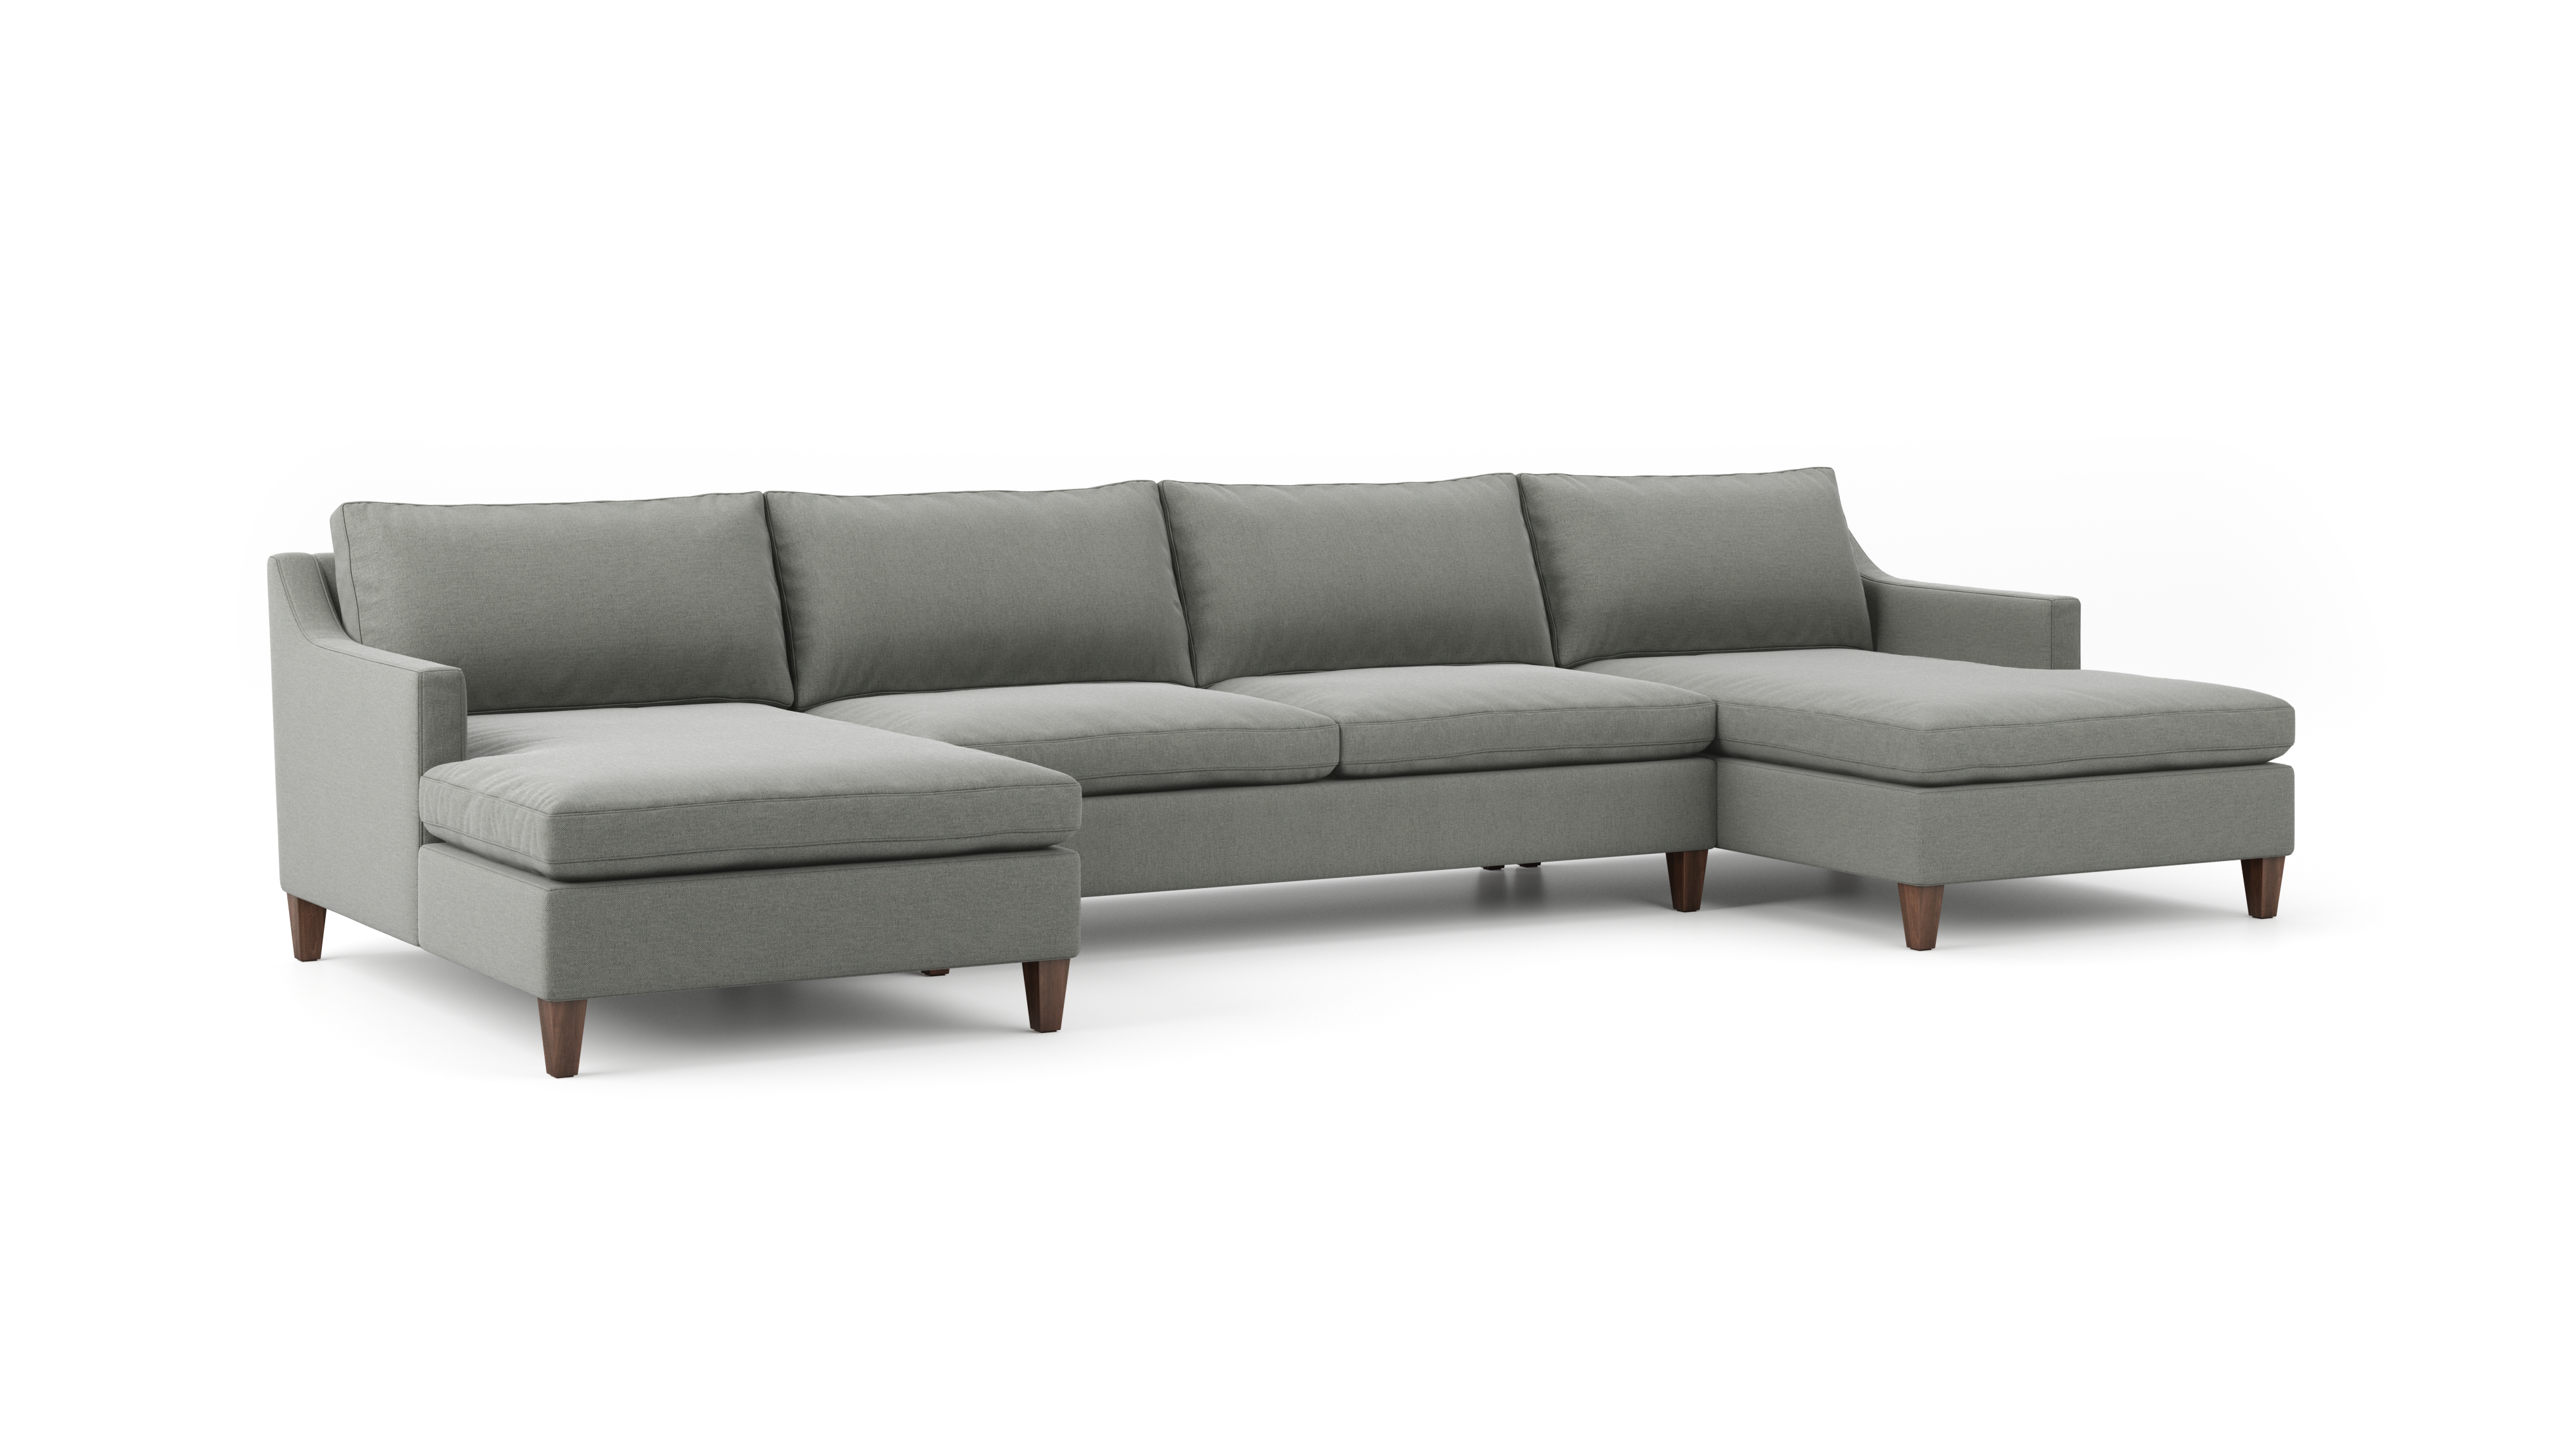 Johnny Homemaker Double Chaise Sectional